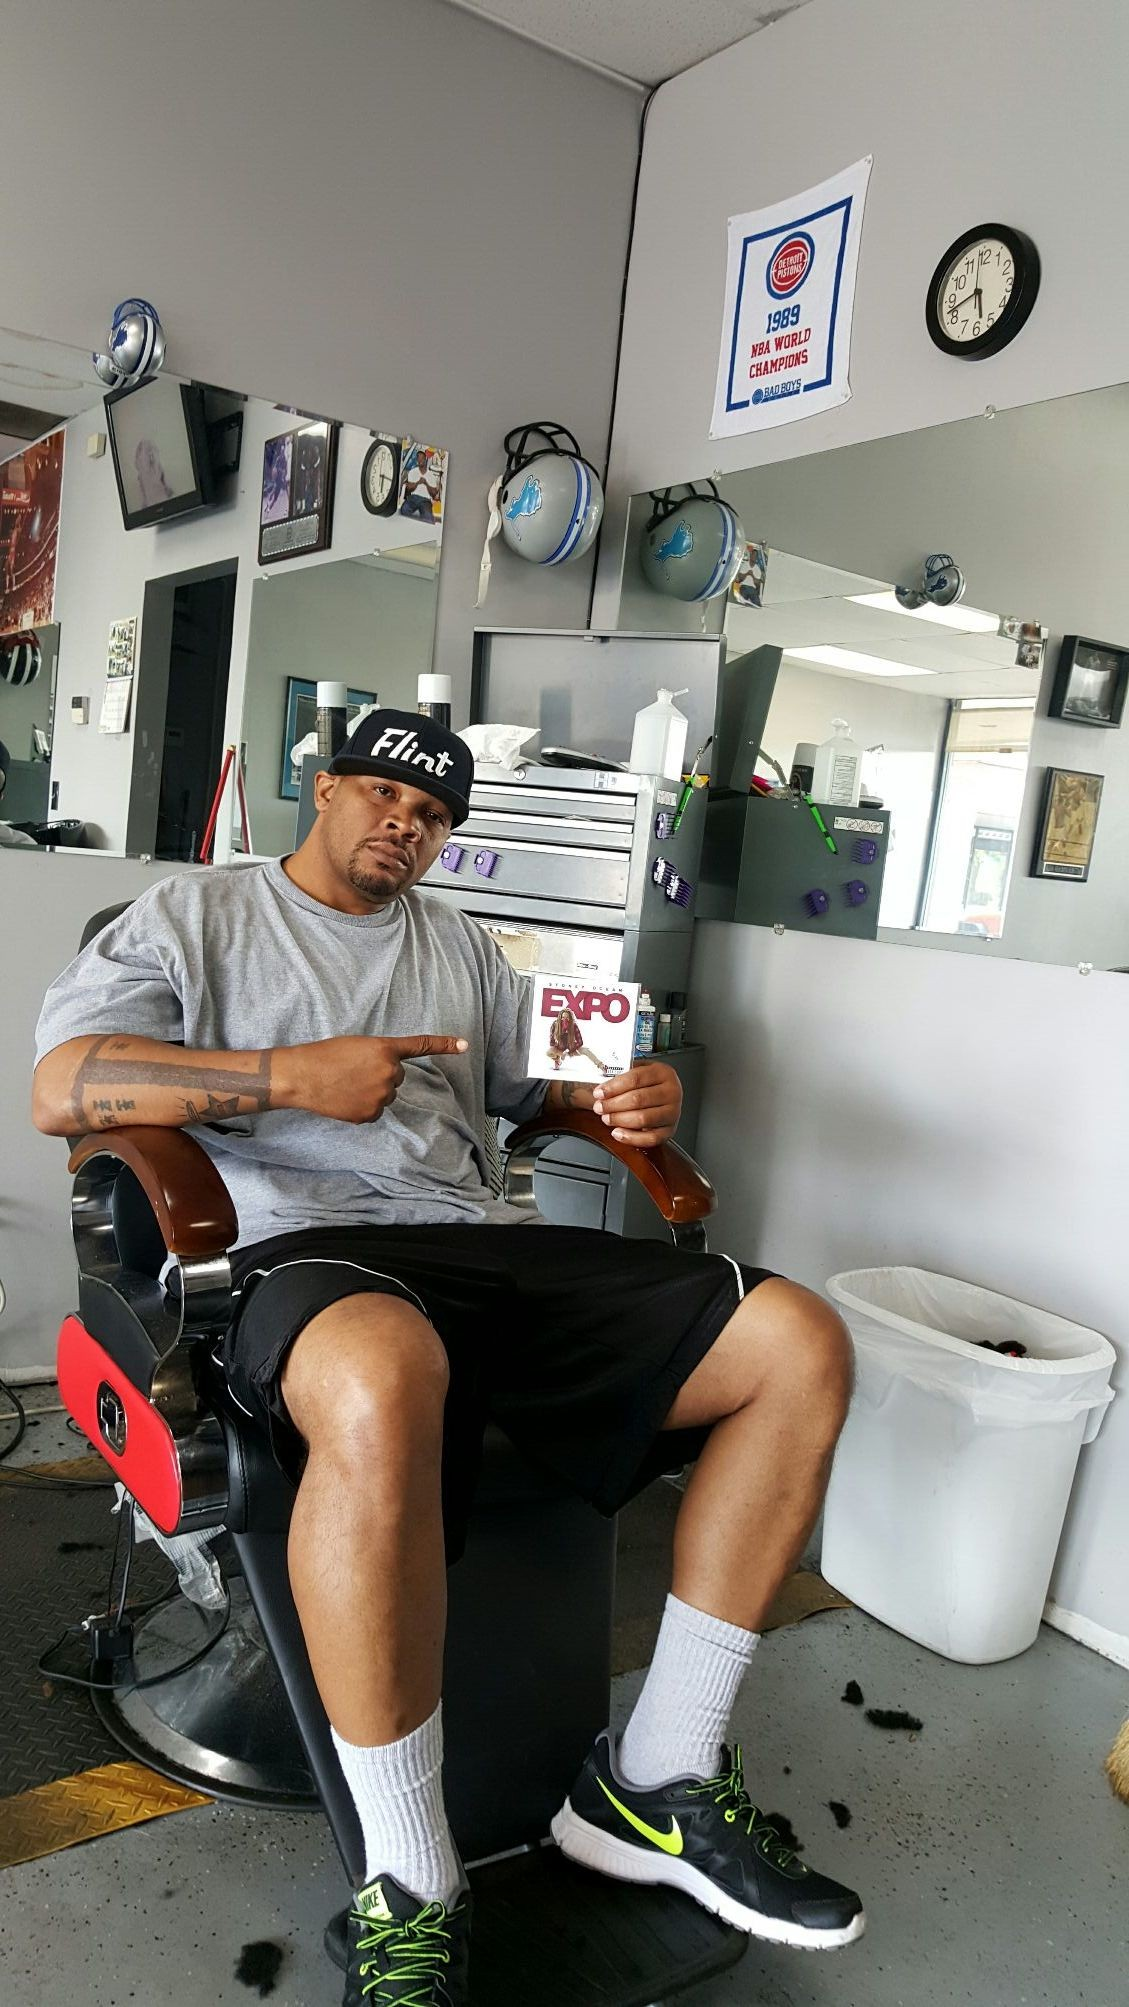 """Got my """"Stoney Ocean Expo"""" cd come get yours at Te' & Jay's Barber Shop 915 Dort Hwy., Suite B Flint, MI 48503 *** walk-ins are welcome *** *** In & Out *** Contact: 810-742-5125"""